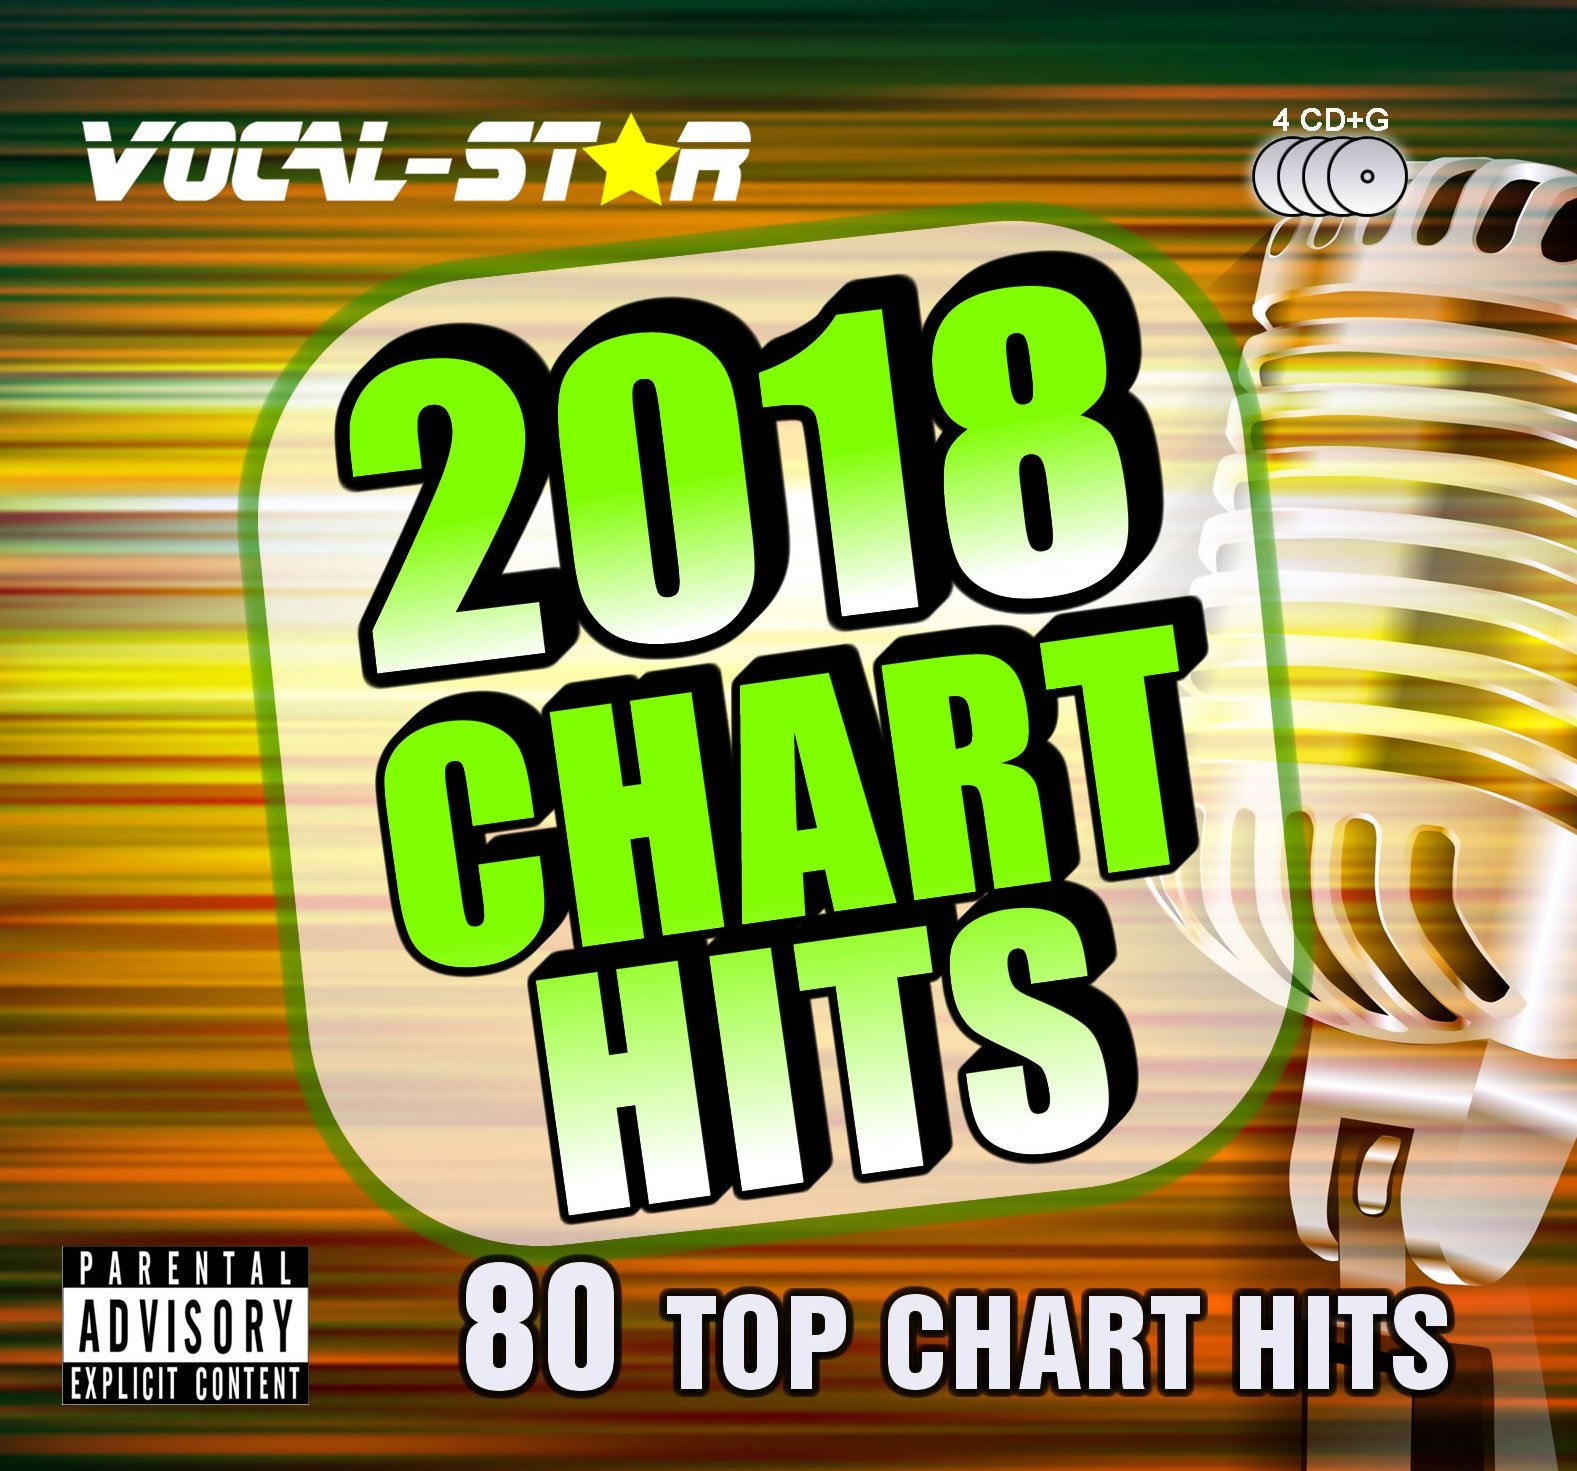 Vocal-Star 2018 Karaoke Hits 80 Songs